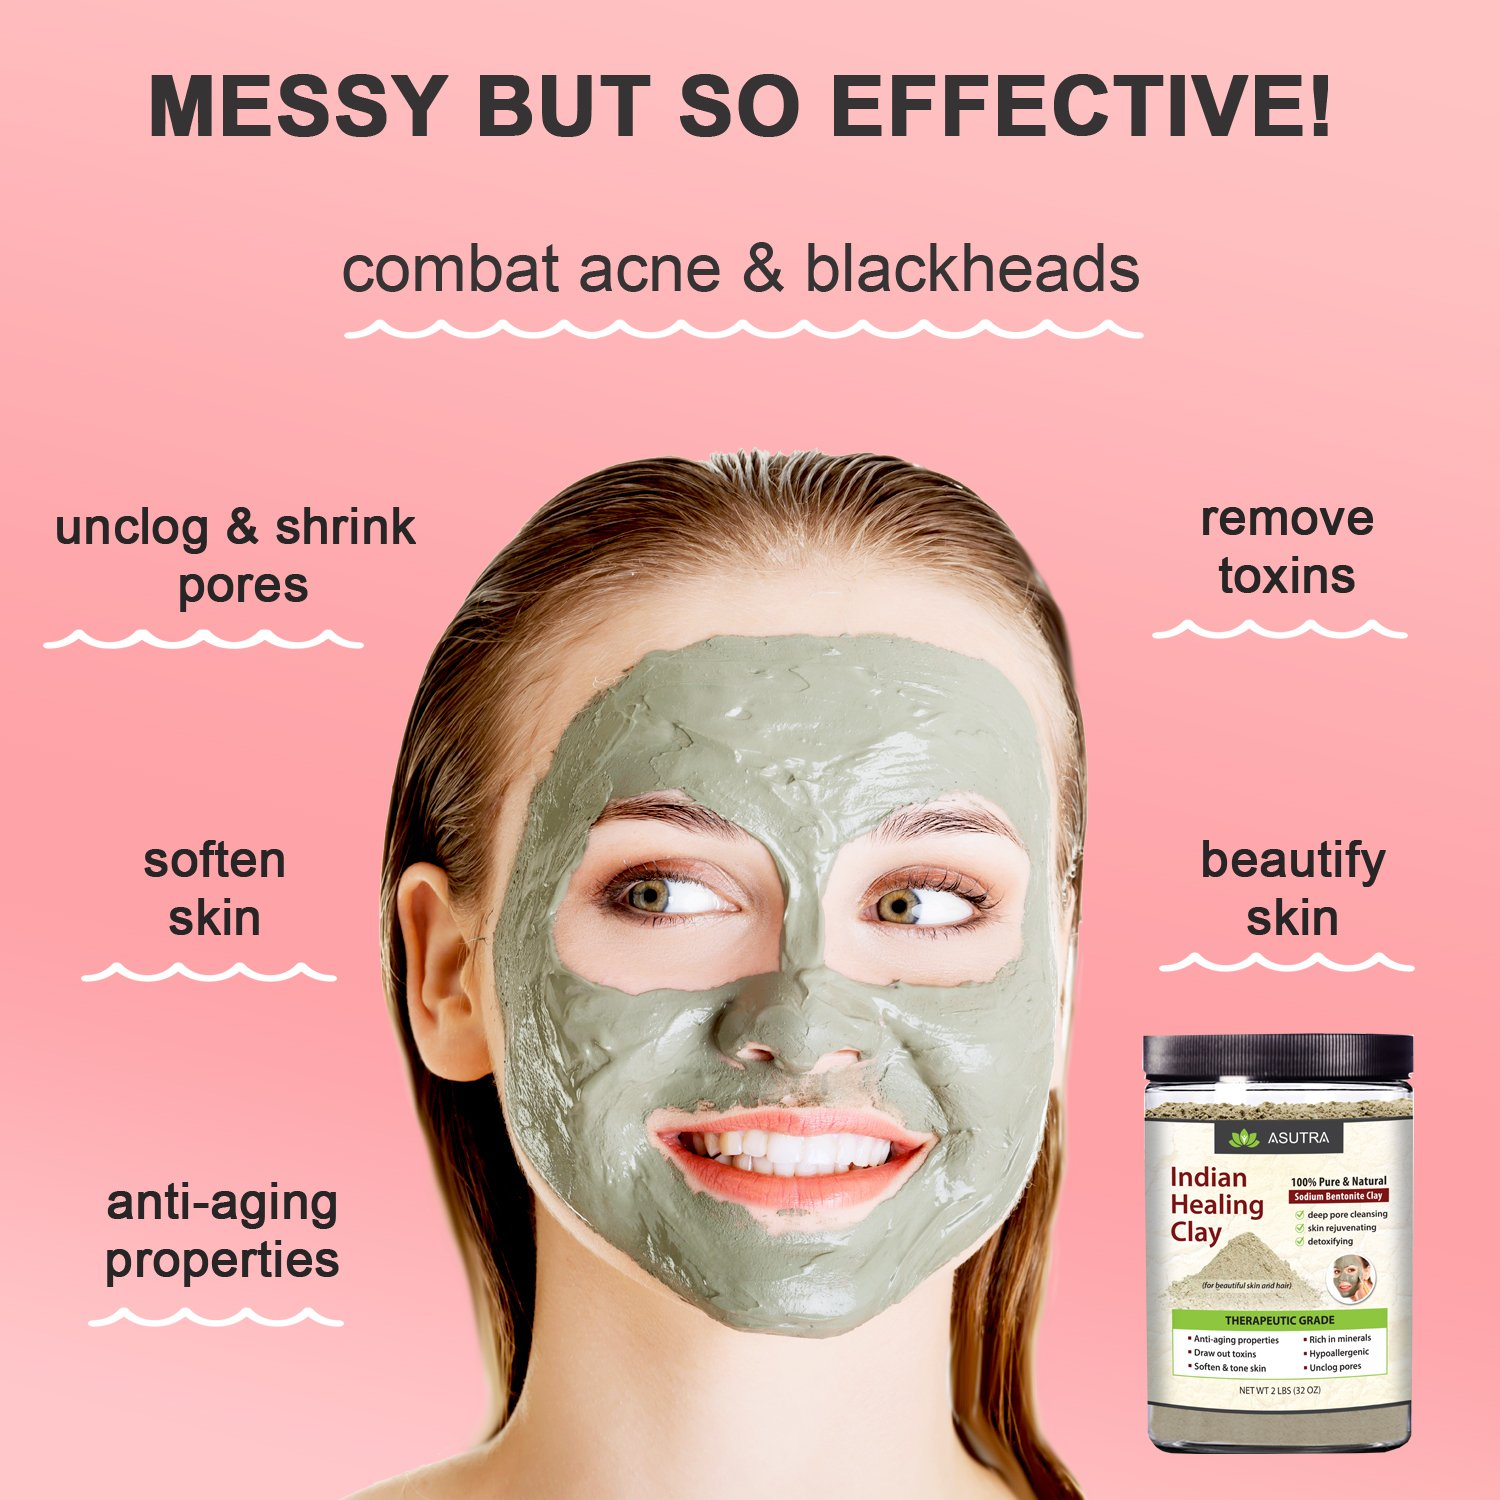 5 Best Clay Face Mask Products For Blackheads In India